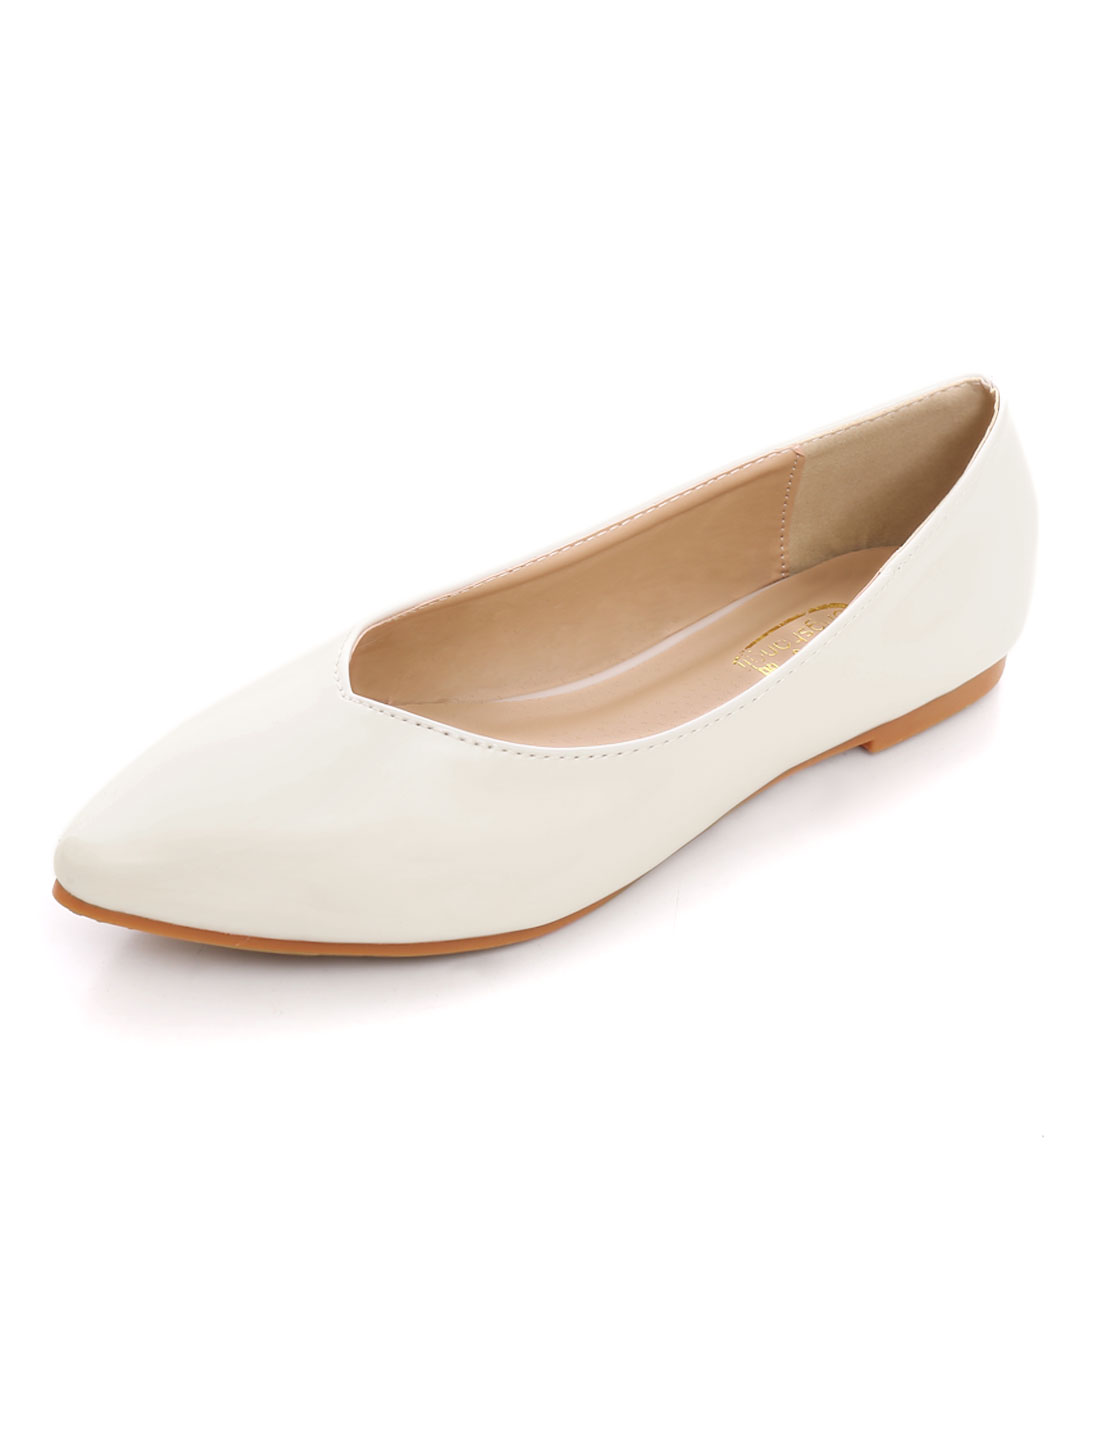 Woman PU Leather V-Cut Vamp Slip On Ballet Pointed Flats White US 10